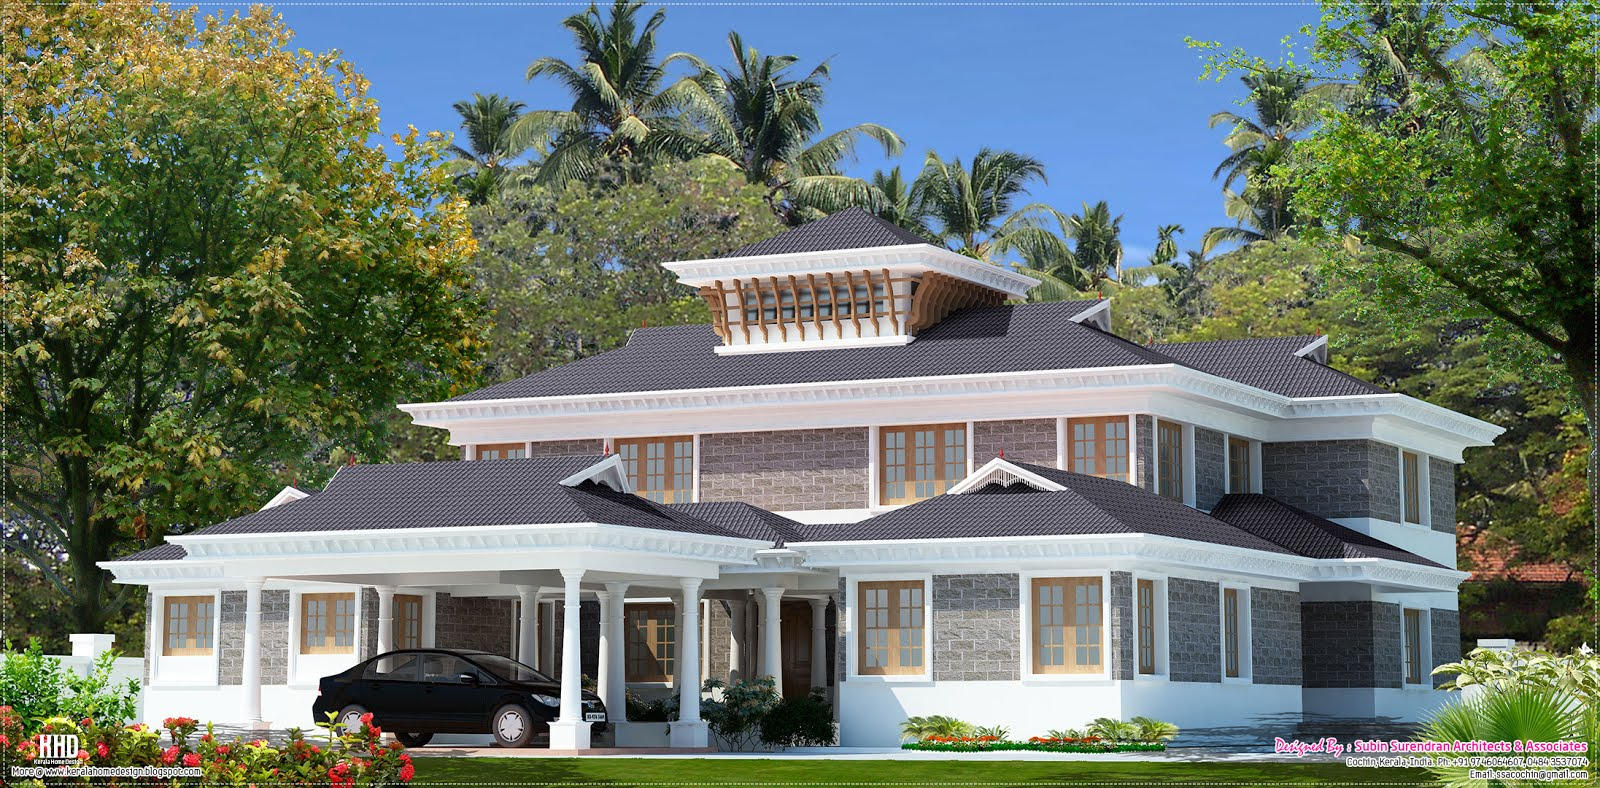 5000 luxury villa design kerala home design and for 5000 sq ft house plans in india